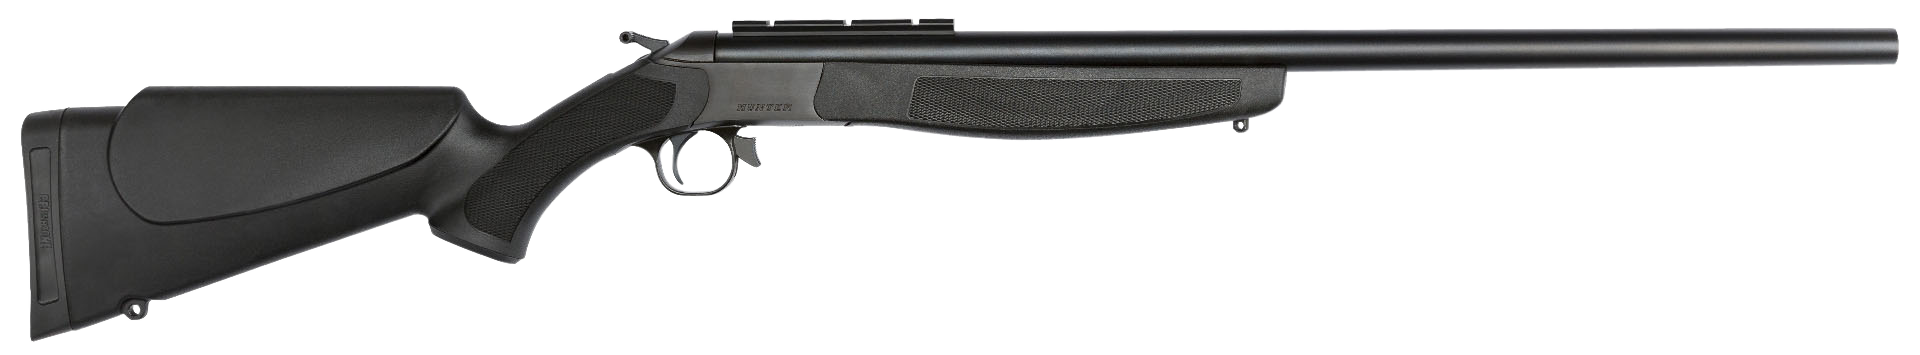 CVA Hunter Break Open Rifle - 450 Bushmaster 25